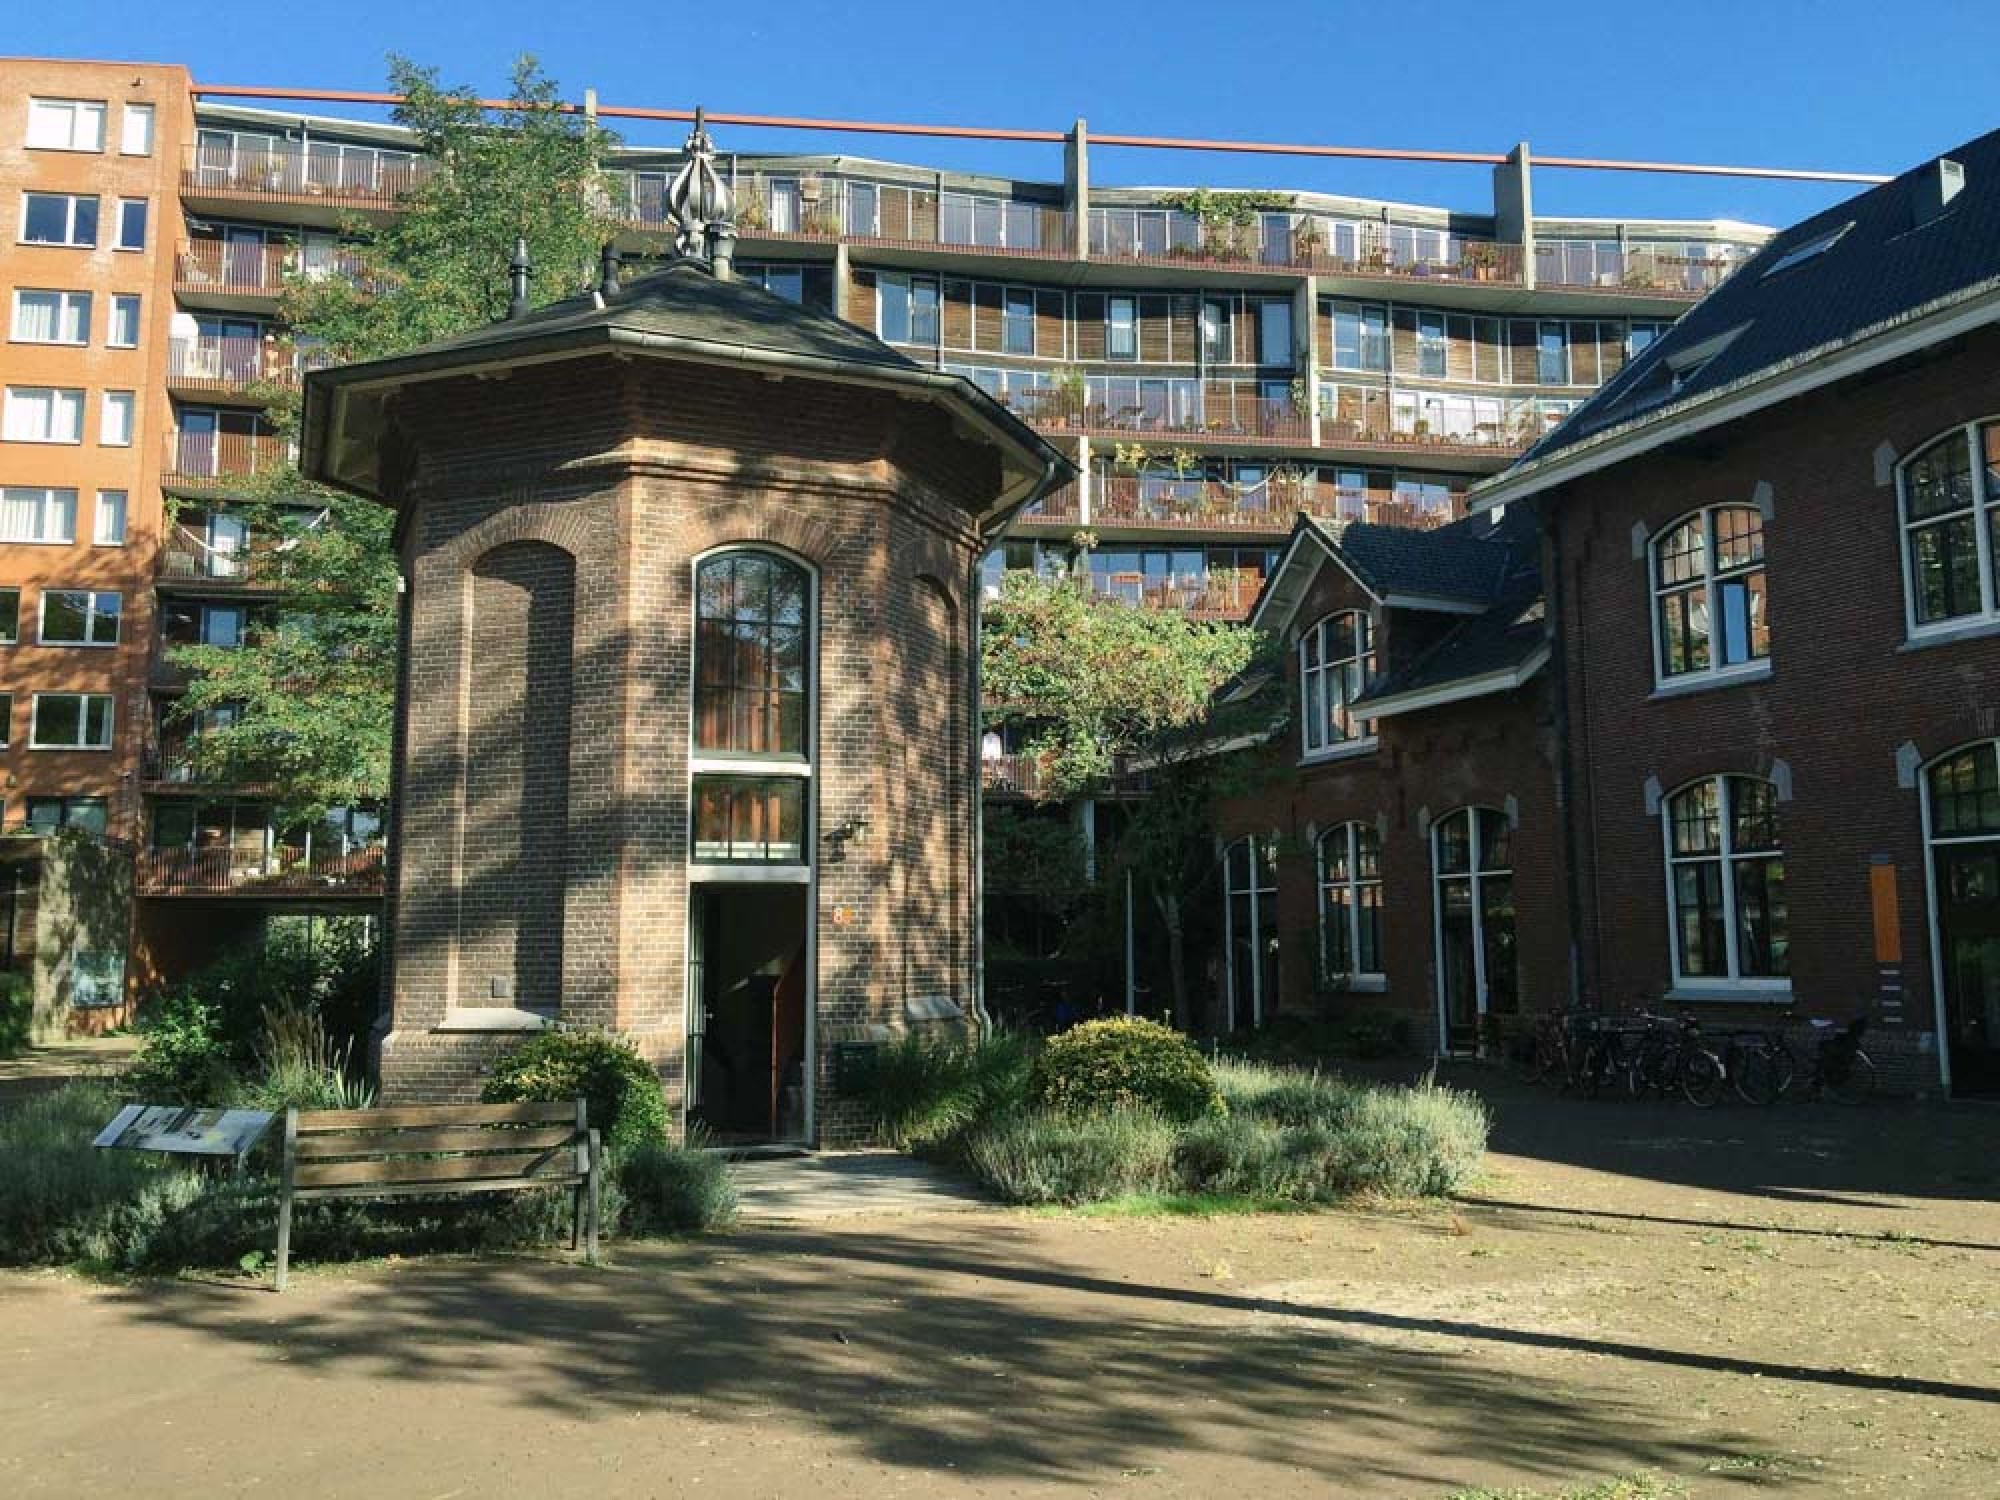 Hotel de WIndeketel - special place to stay in Amsterdam